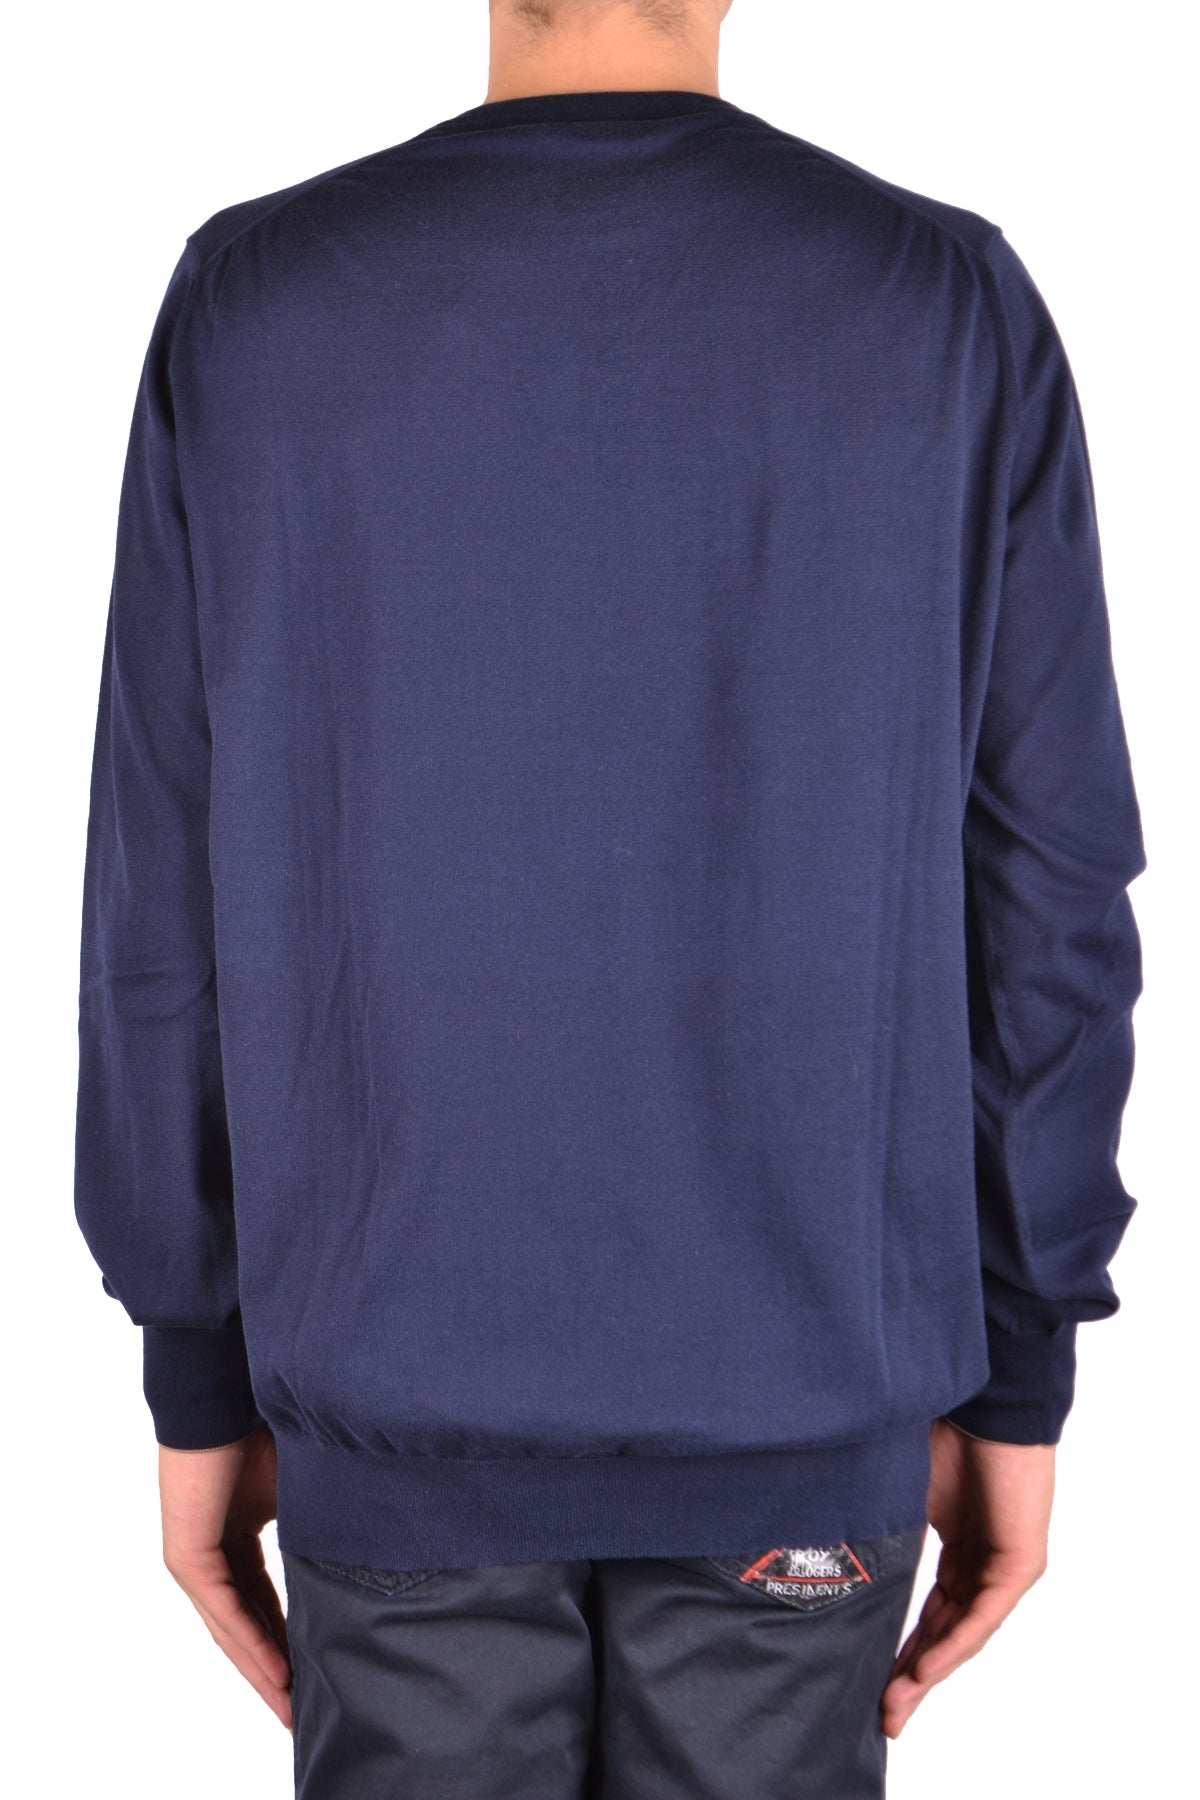 Sweater Brunello Cucinelli-Sweater - MAN-Product Details Terms: New With LabelYear: 2018Main Color: BlueGender: ManMade In: ItalyManufacturer Part Number: M2900162Size: ItSeason: Spring / SummerClothing Type: Sweater Composition: Cotton 100%-Keyomi-Sook